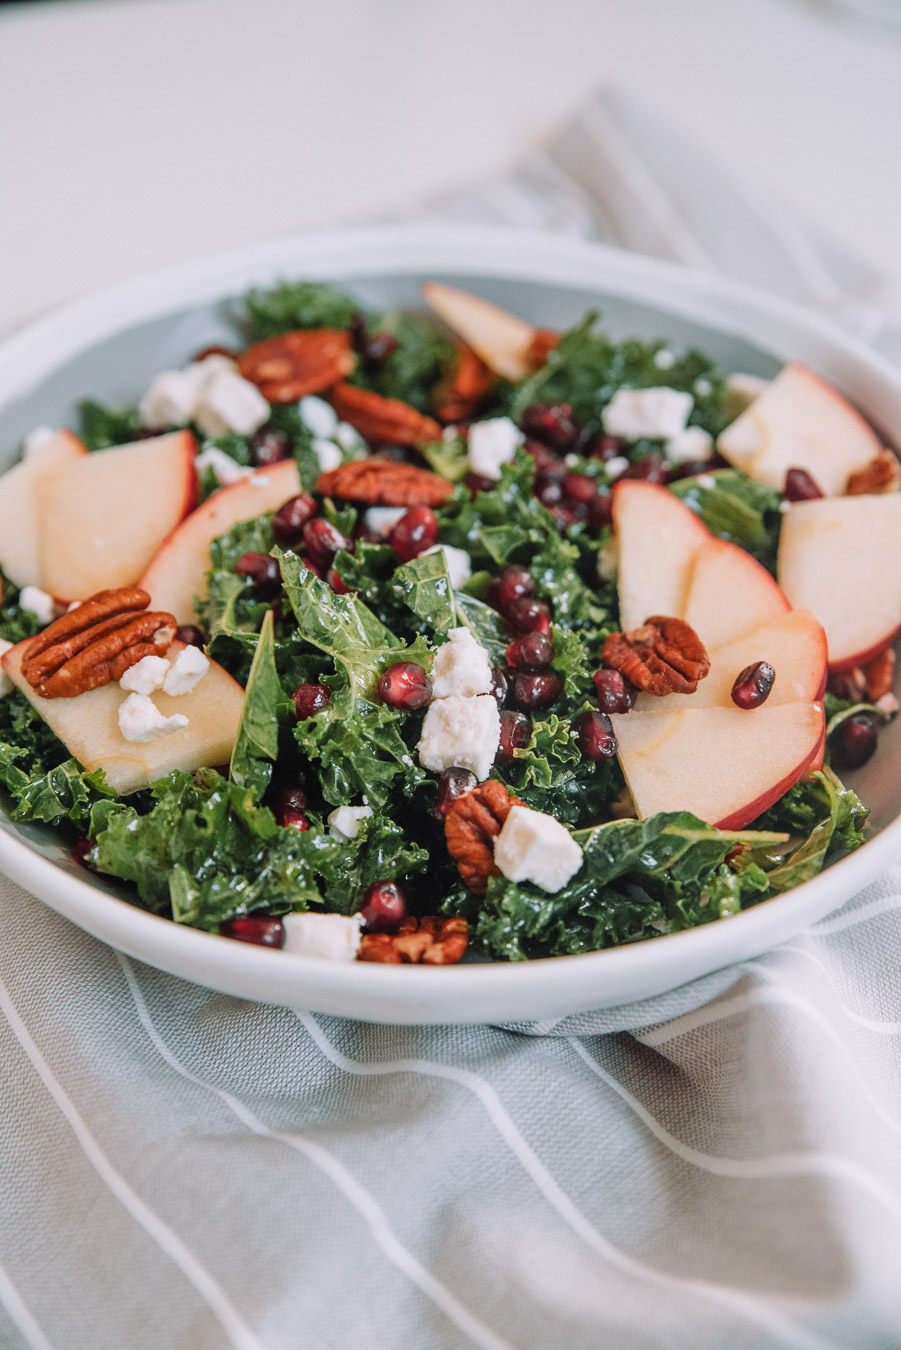 Kale Apple Salad with Pomegranate Dressing sprinkled with feta cheese crumbles and pecans in a bowl.